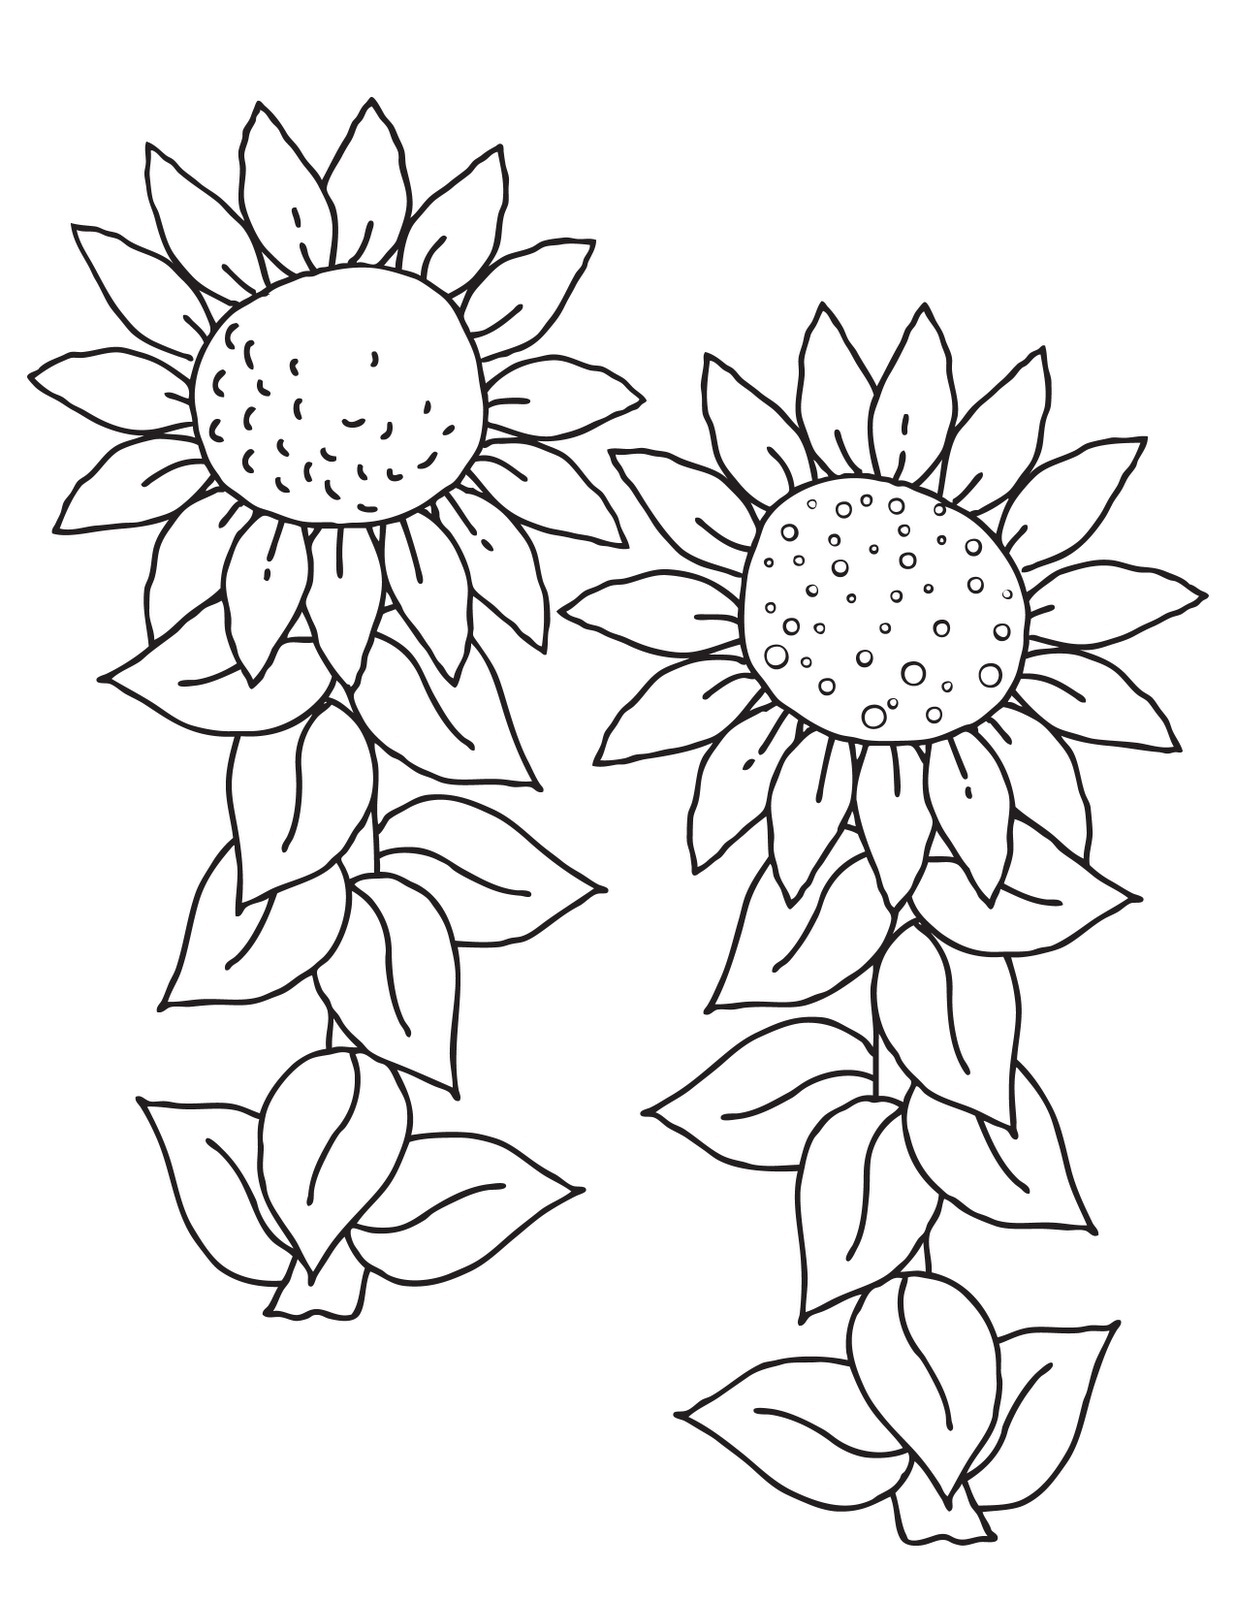 Sunflower Coloring Pages For Preschoolers Coloringcks